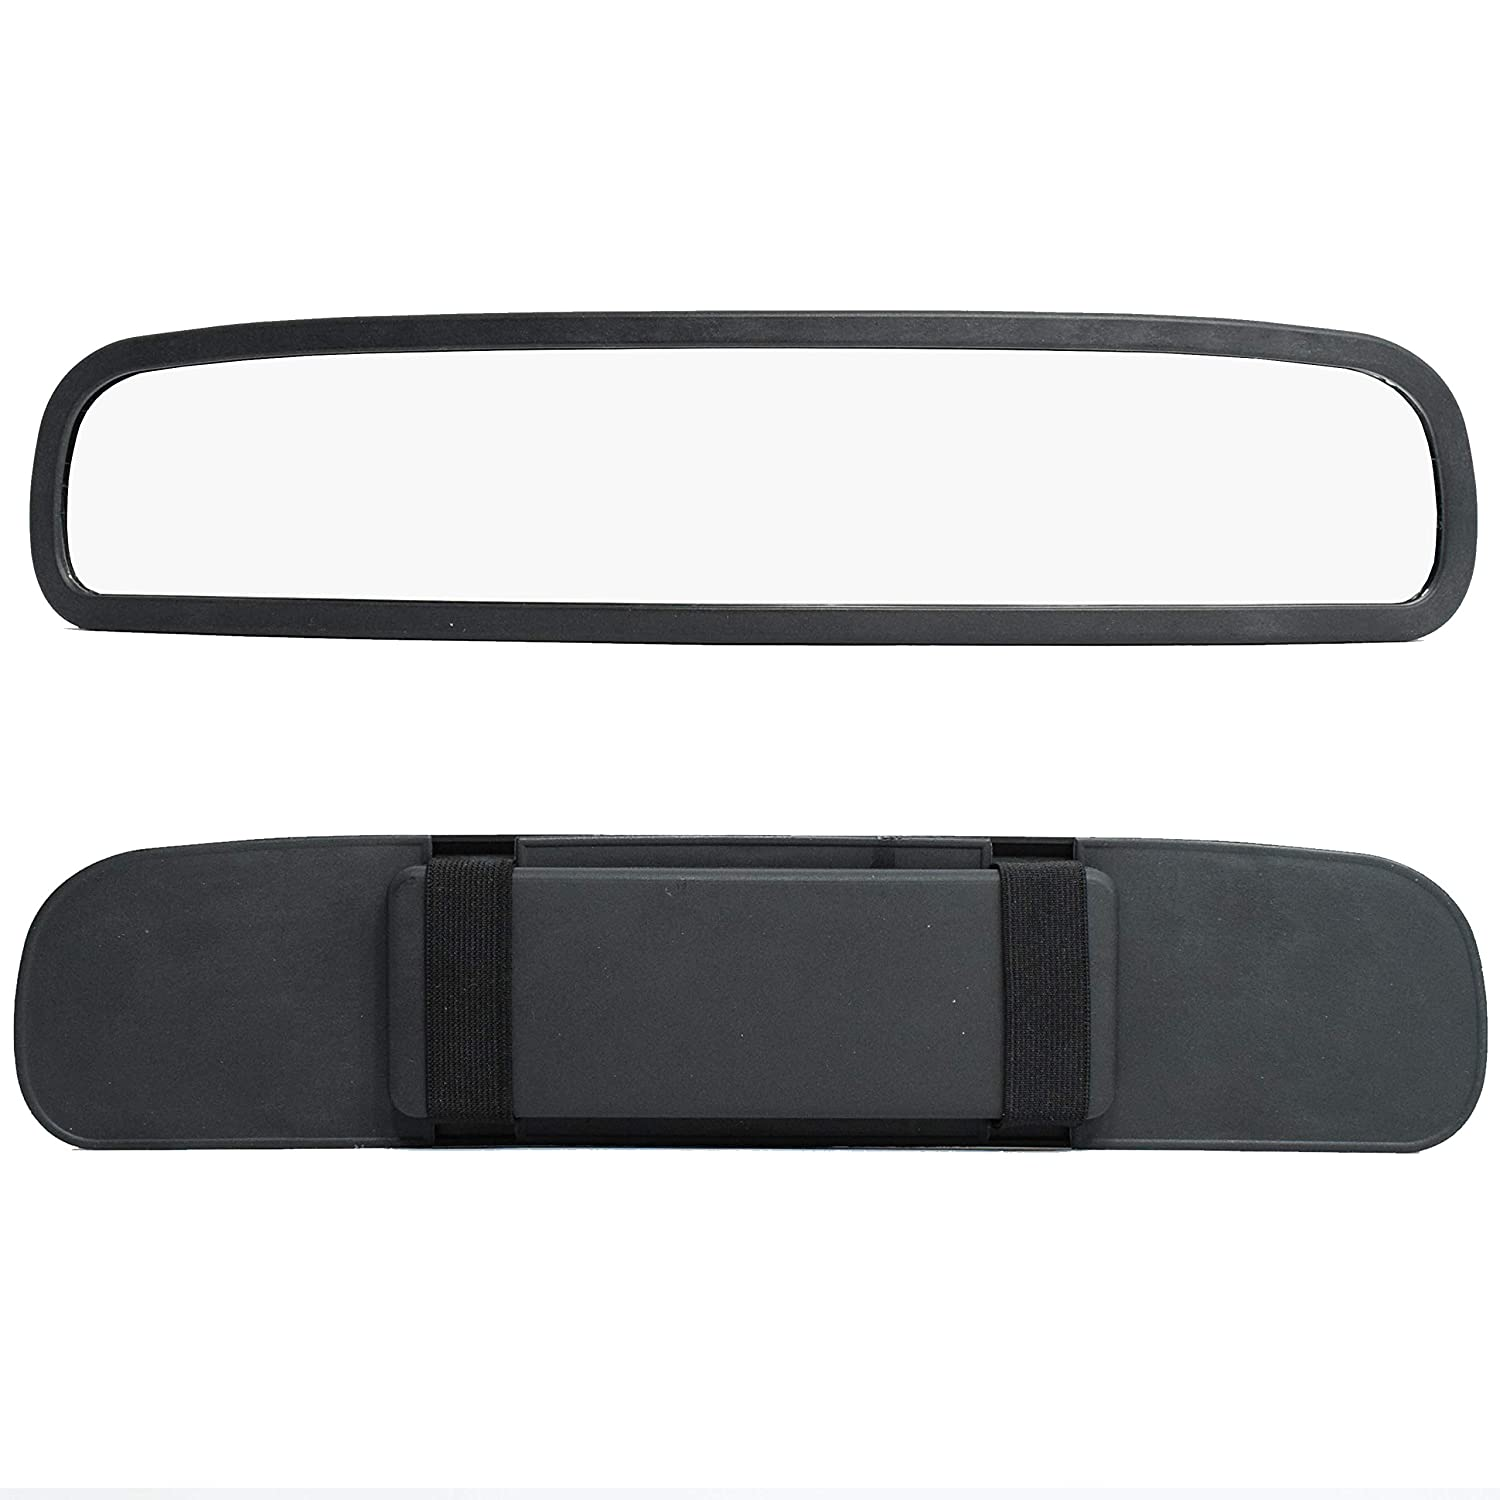 Rear View Mirror Universal Car Interior Rear View Mirror With Elastic Wrap